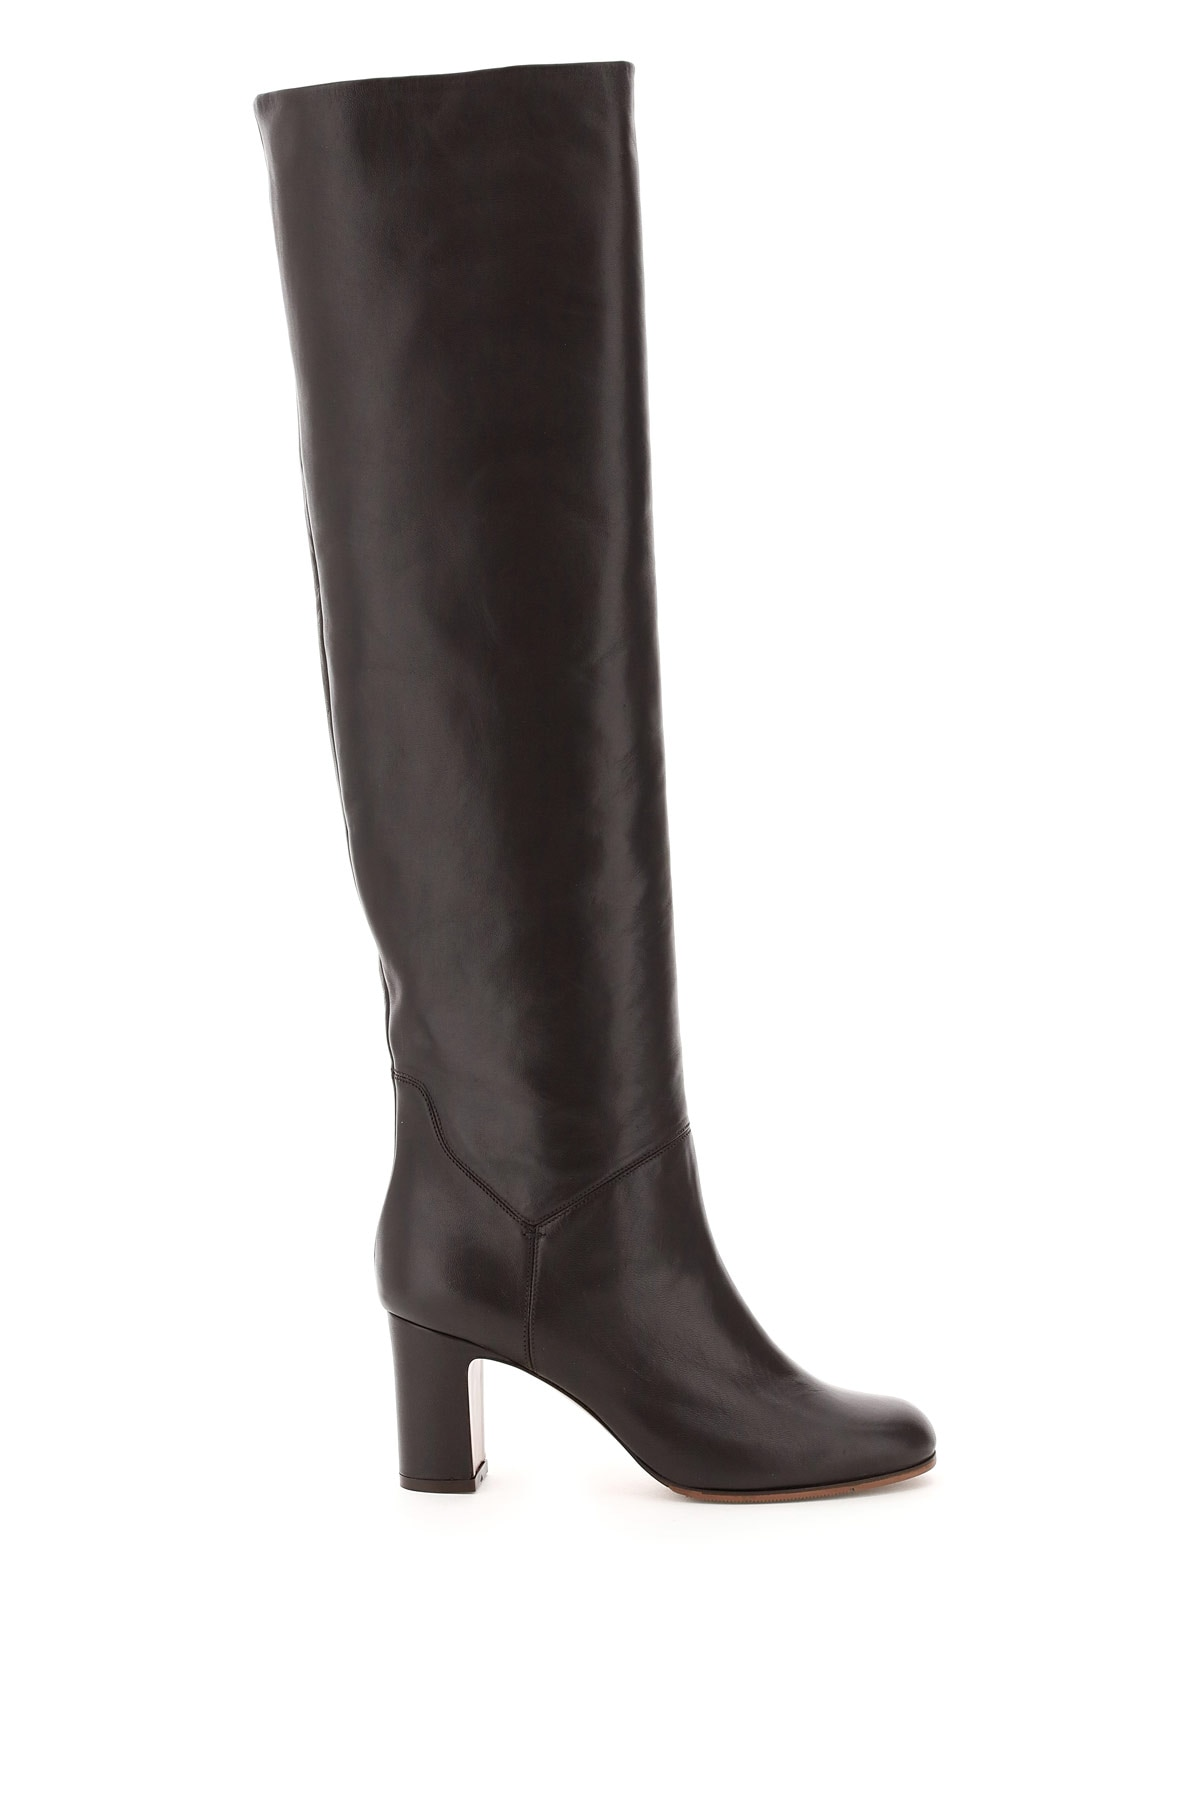 L'autre Chose High Nappa Boots 36 Brown Leather